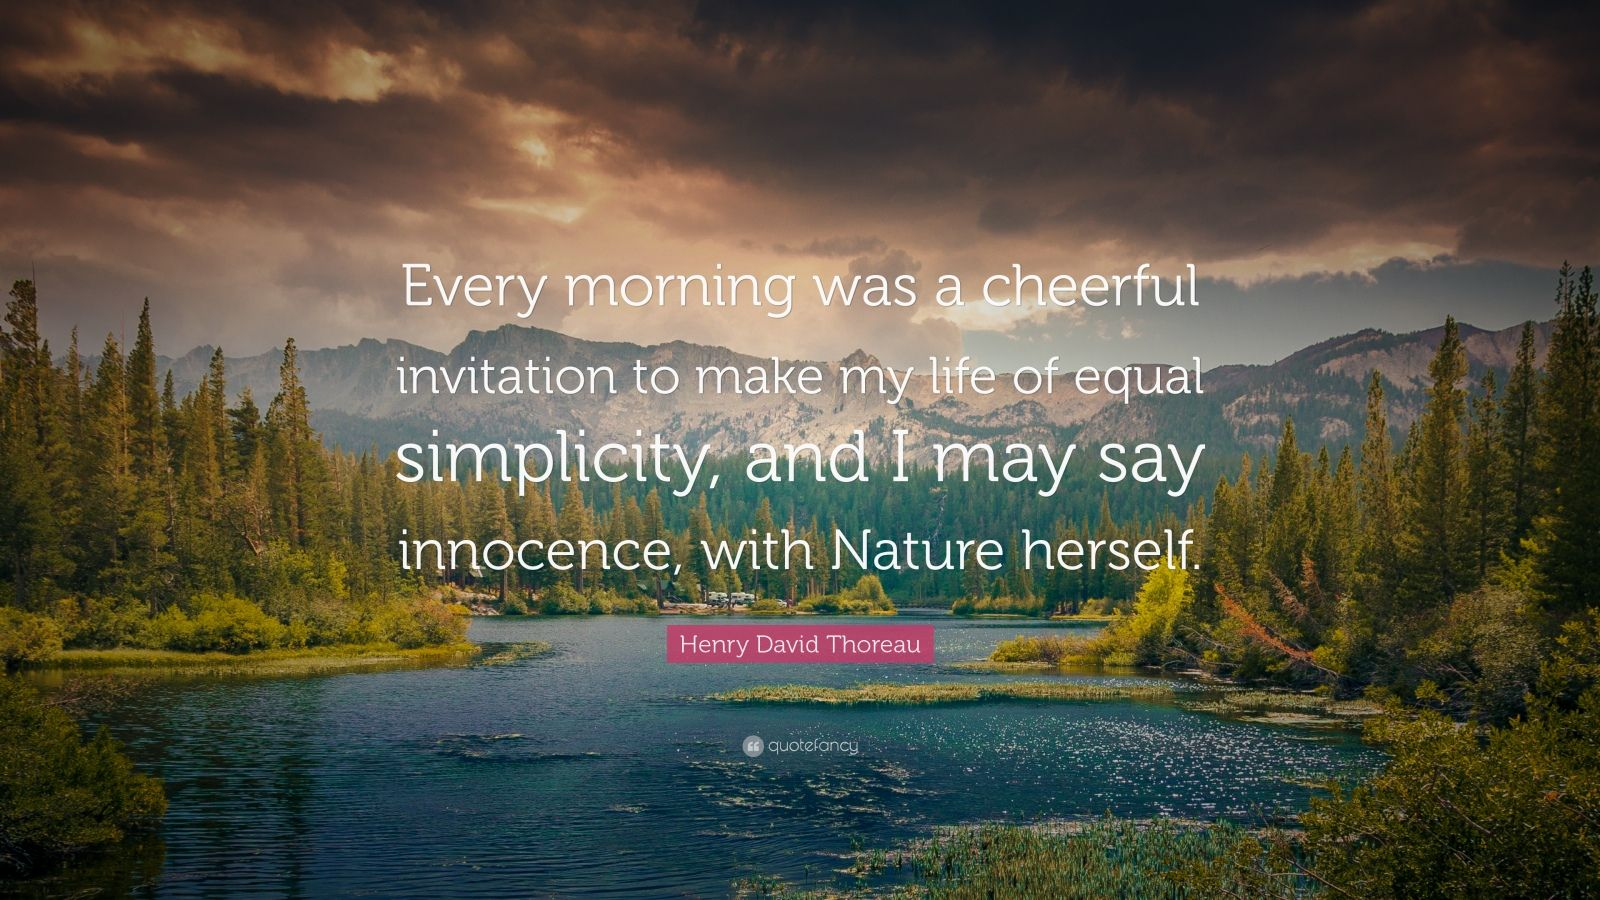 """Henry David Thoreau Quote: """"Every morning was a cheerful invitation to make my life of equal simplicity, and I may say innocence, with Nature herself."""""""